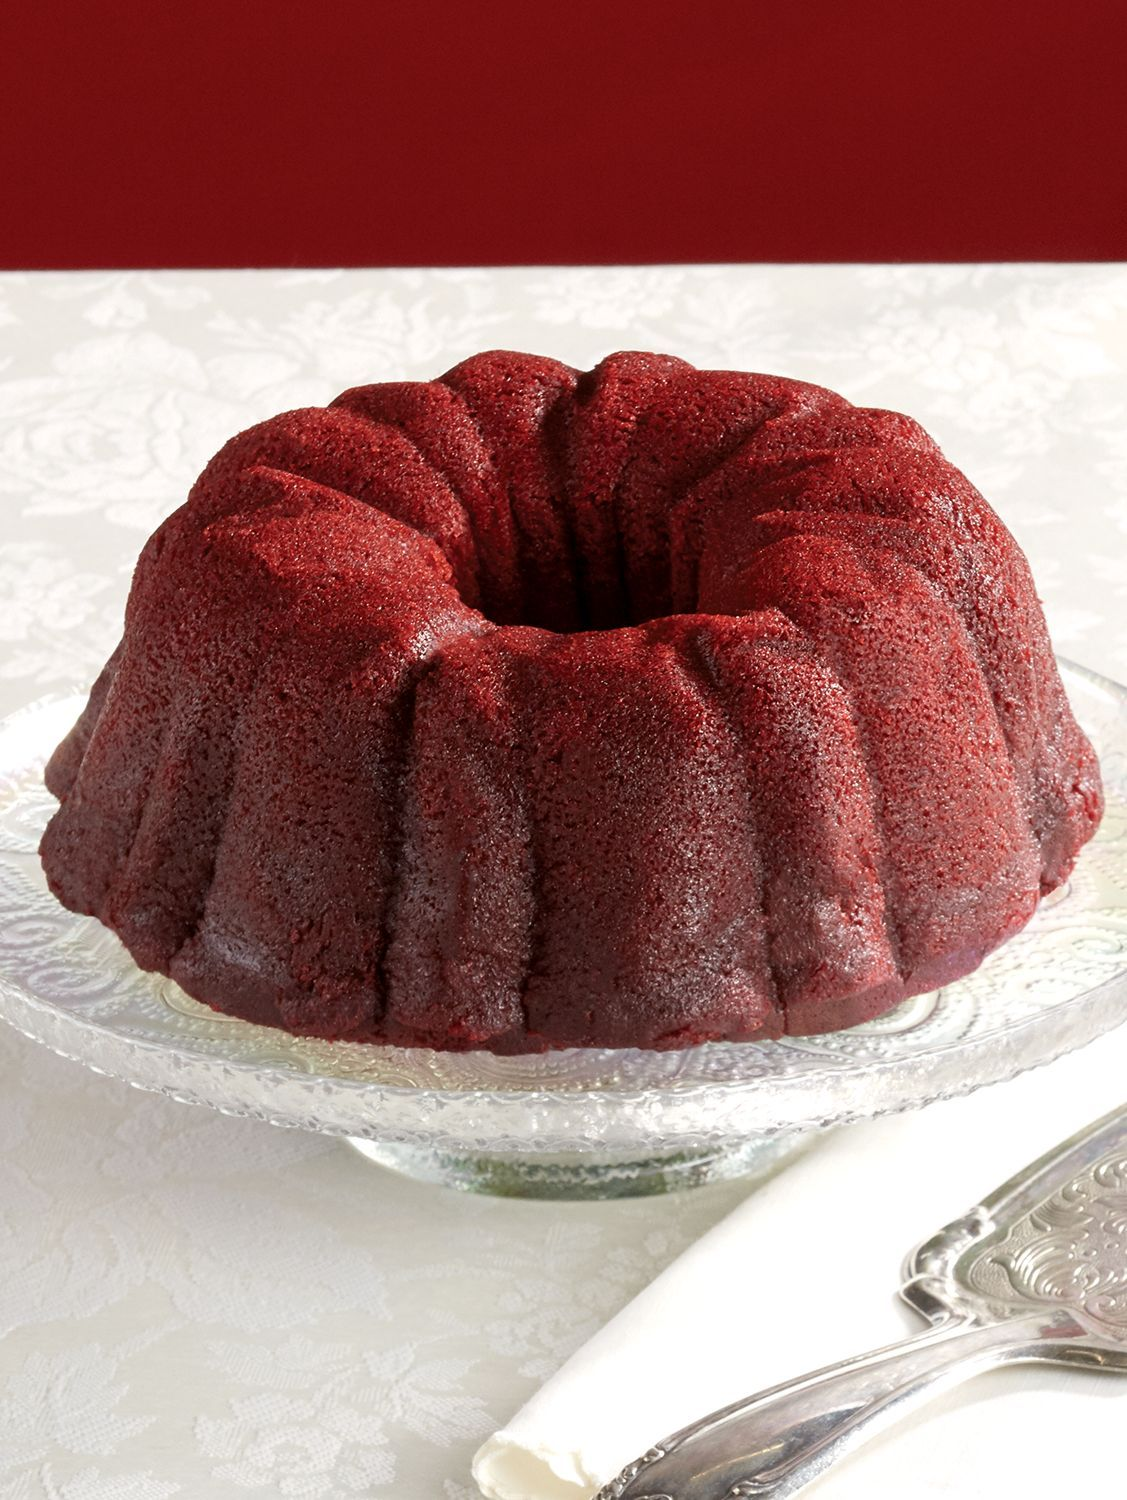 Our Delicious Red Velvet Cake Made With Genuine Jamaican Rum Serve Up A Tradition With A Kick Bowl Cake Cake Toppings Rum Cake